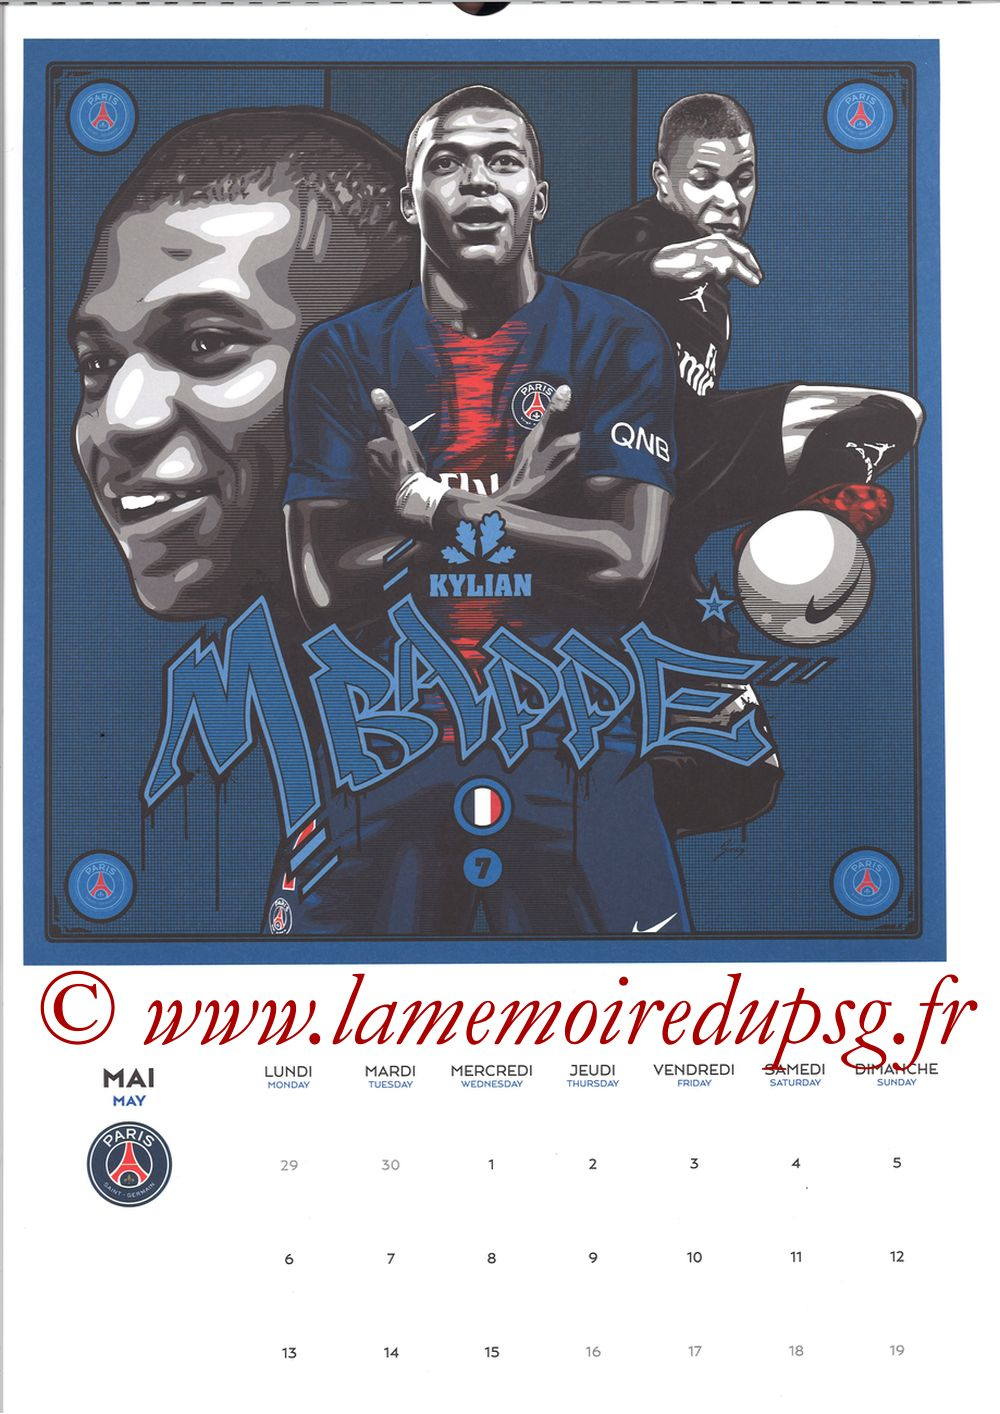 Calendrier PSG 2019 - Page 09 - Kylian MBAPPE